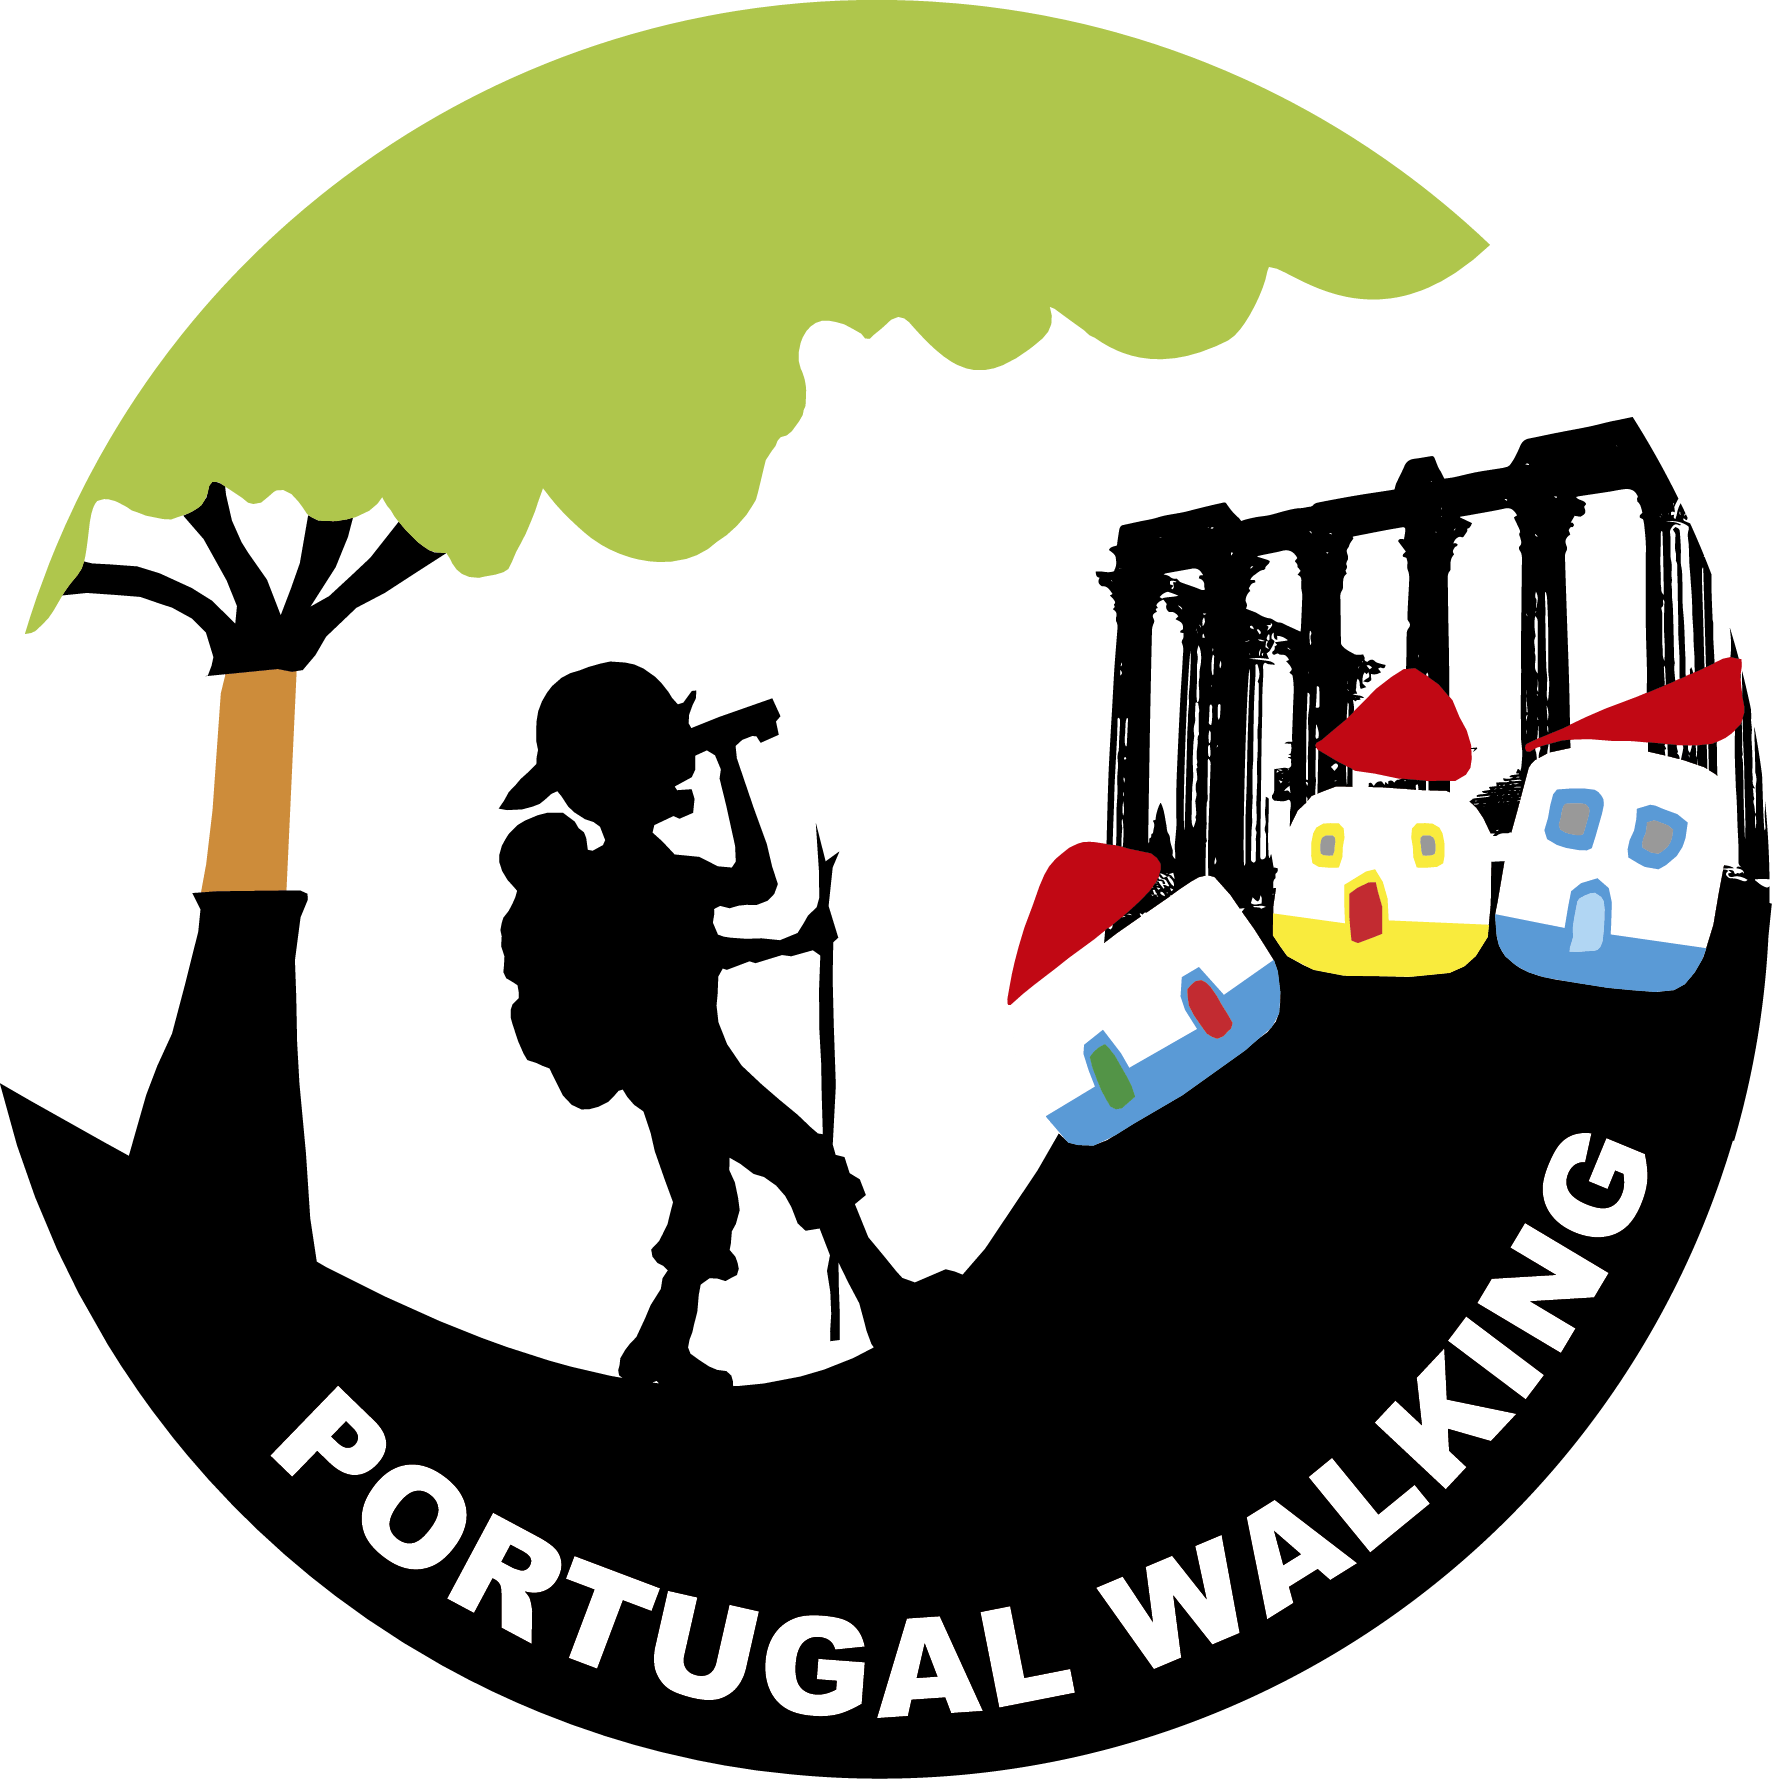 Hiking clipart nature walk. Walking in portugal great